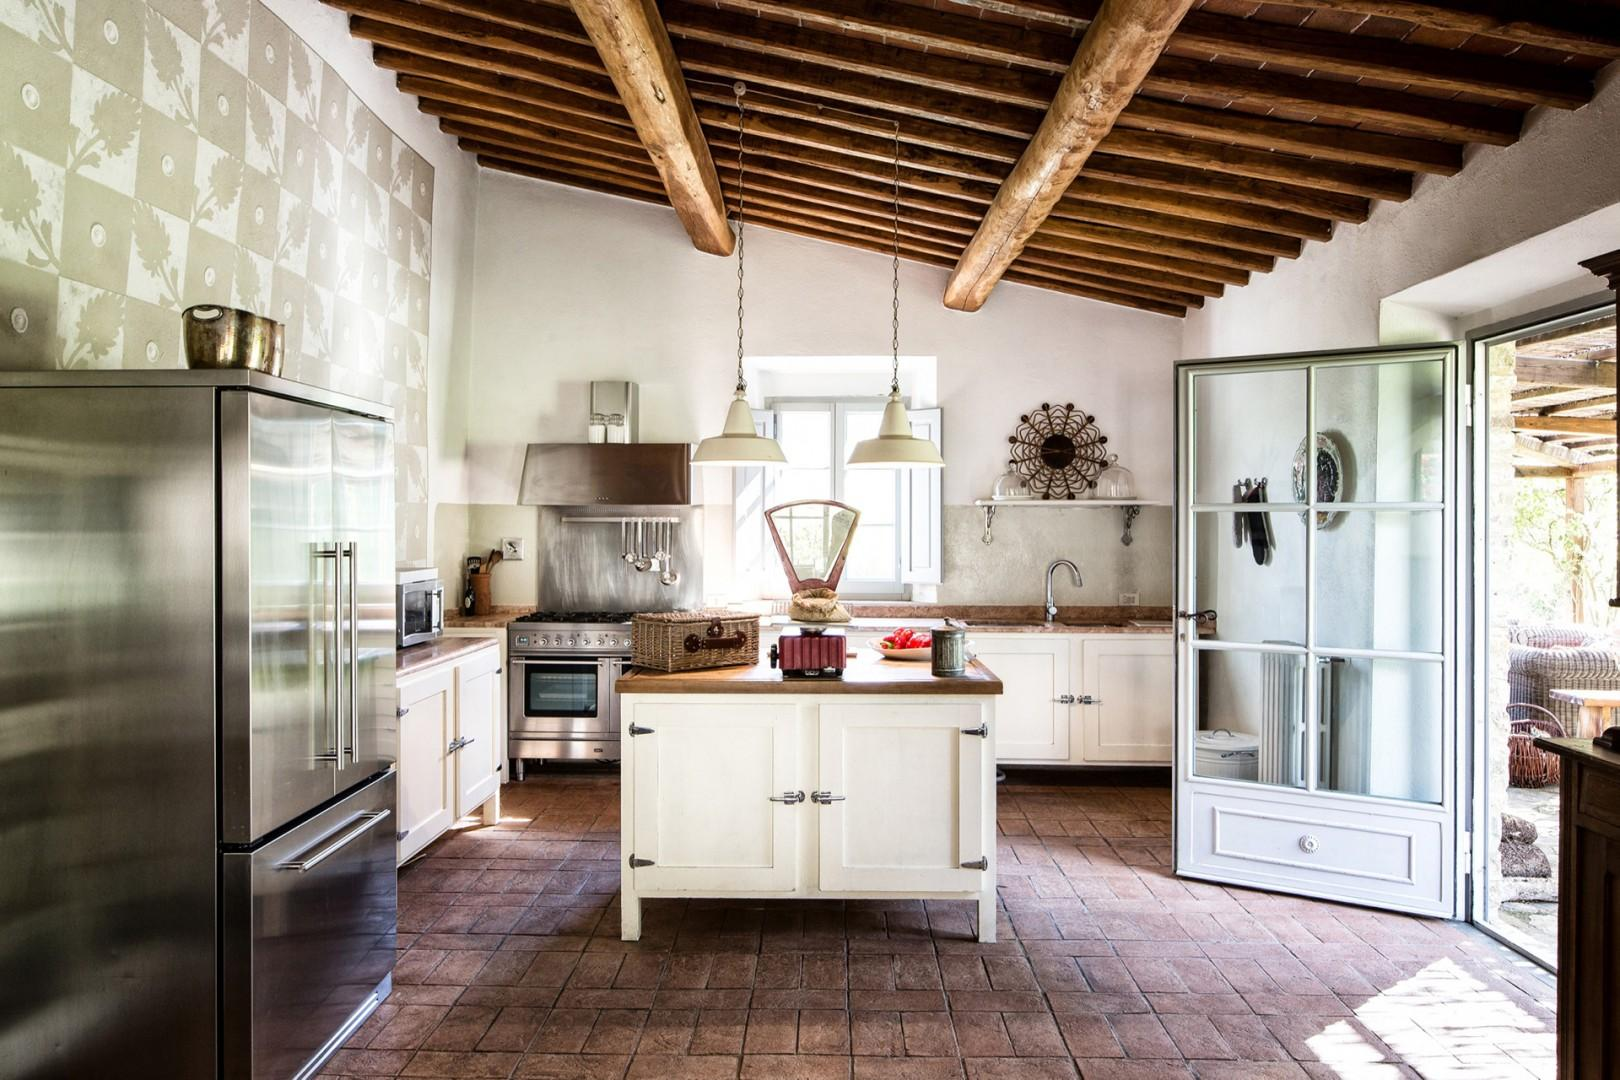 Farm-style kitchen is fully equipped.